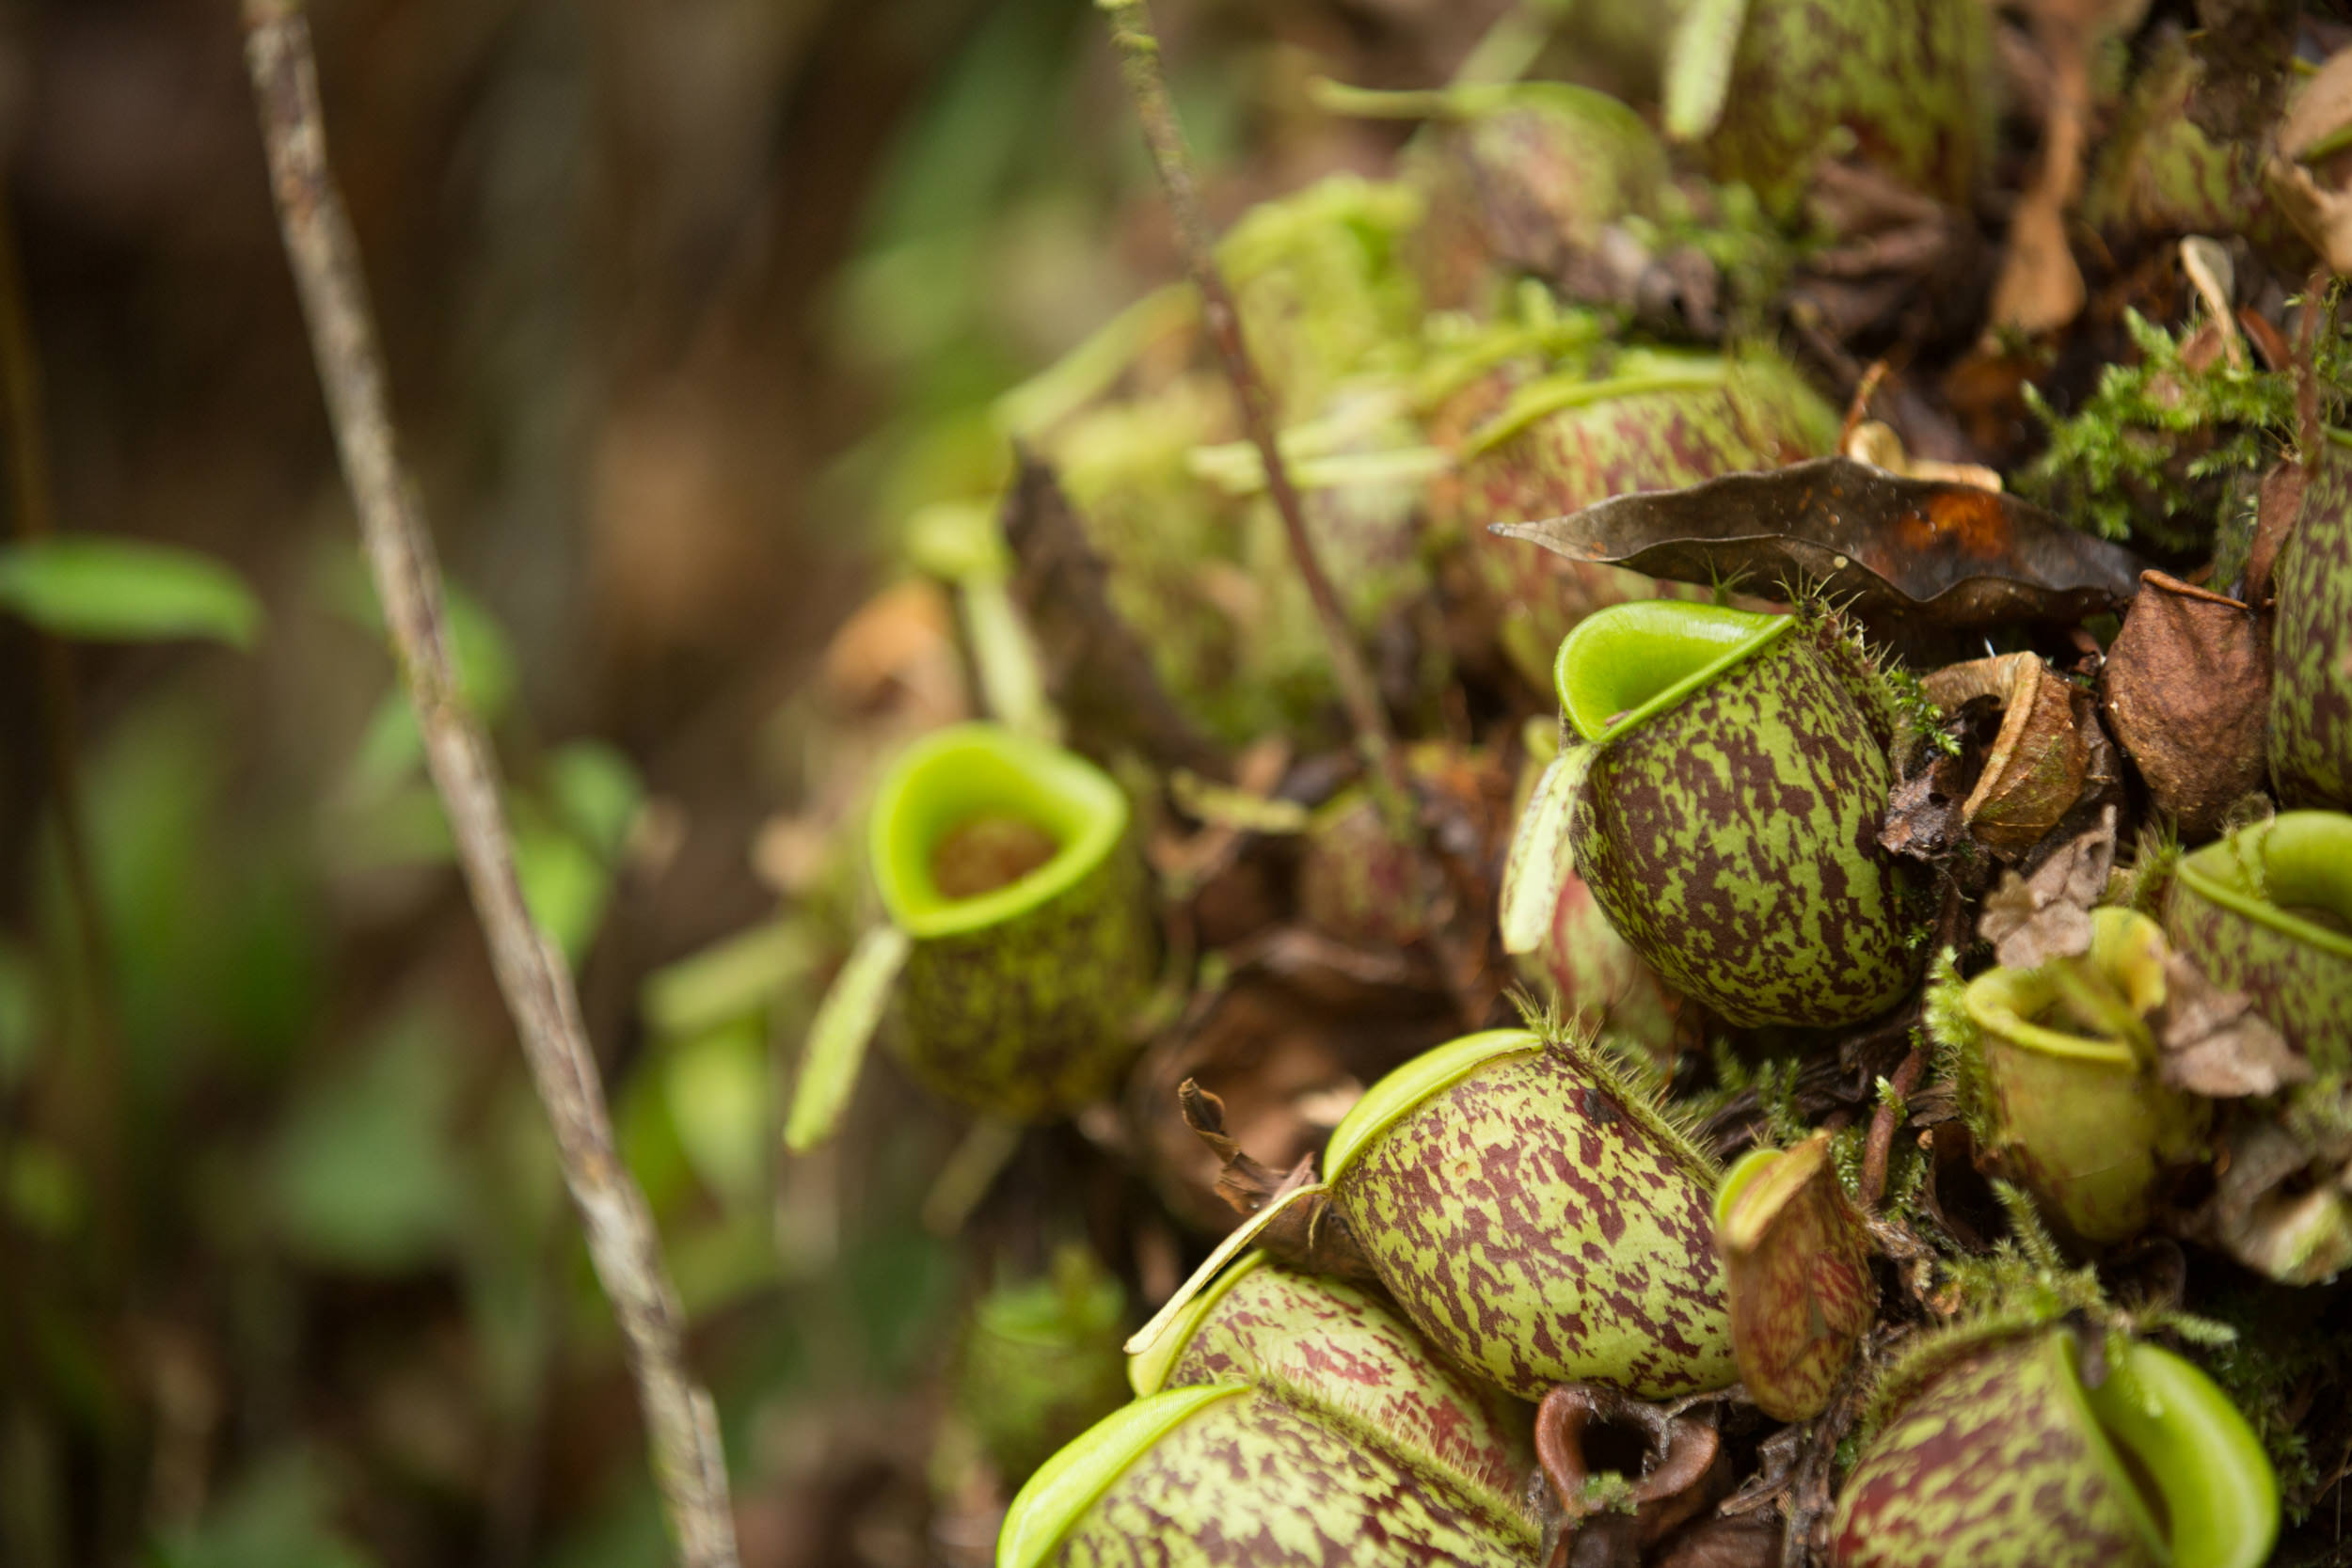 Carnivorous plants can be found in less dense areas.